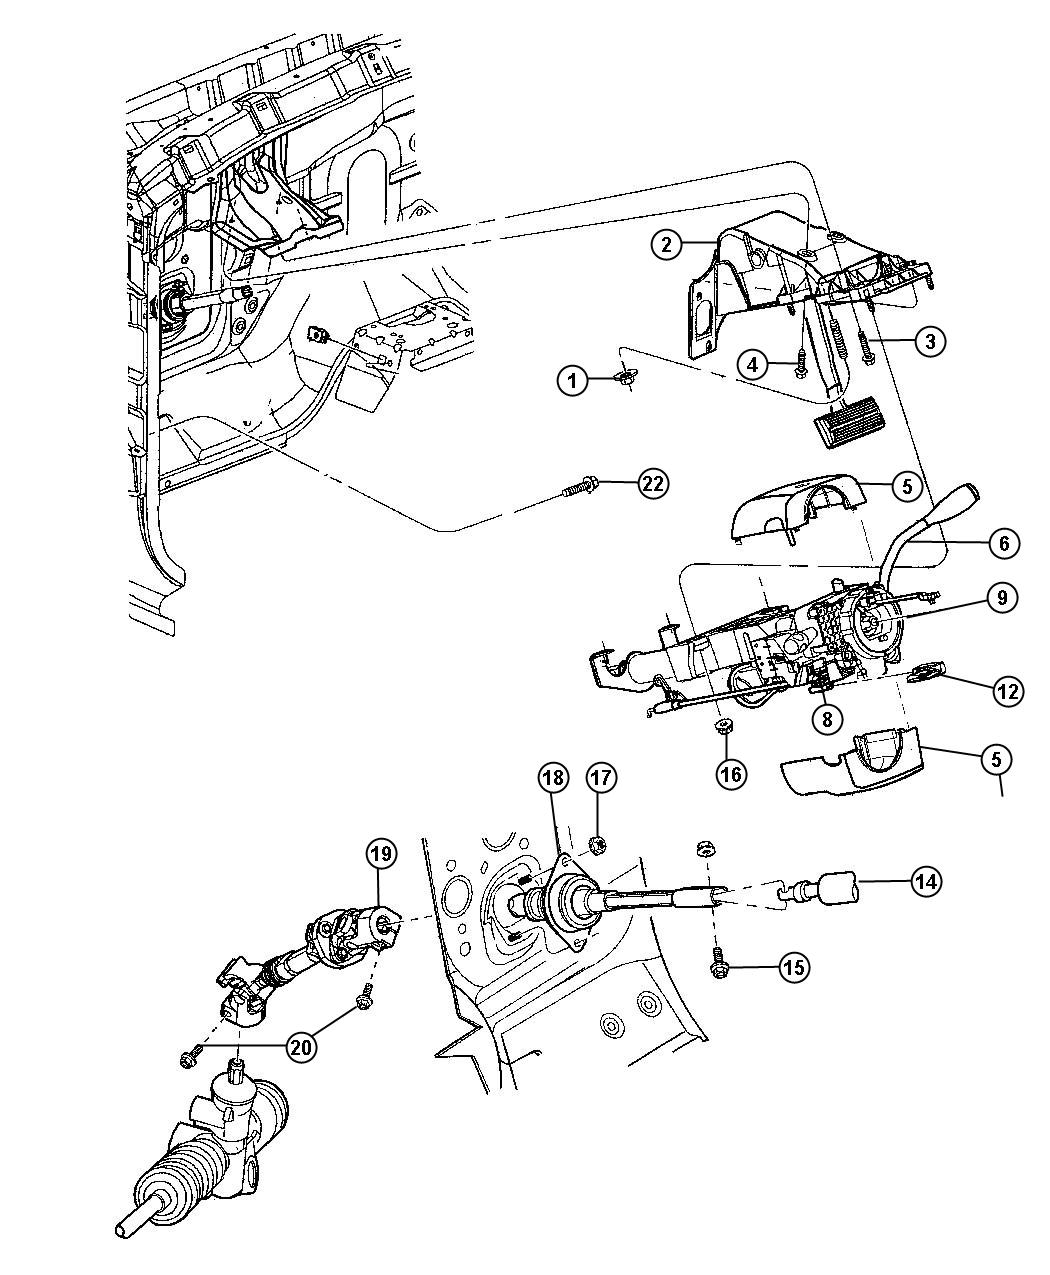 Chrysler 300 Shroud. Steering column. Manual transmission